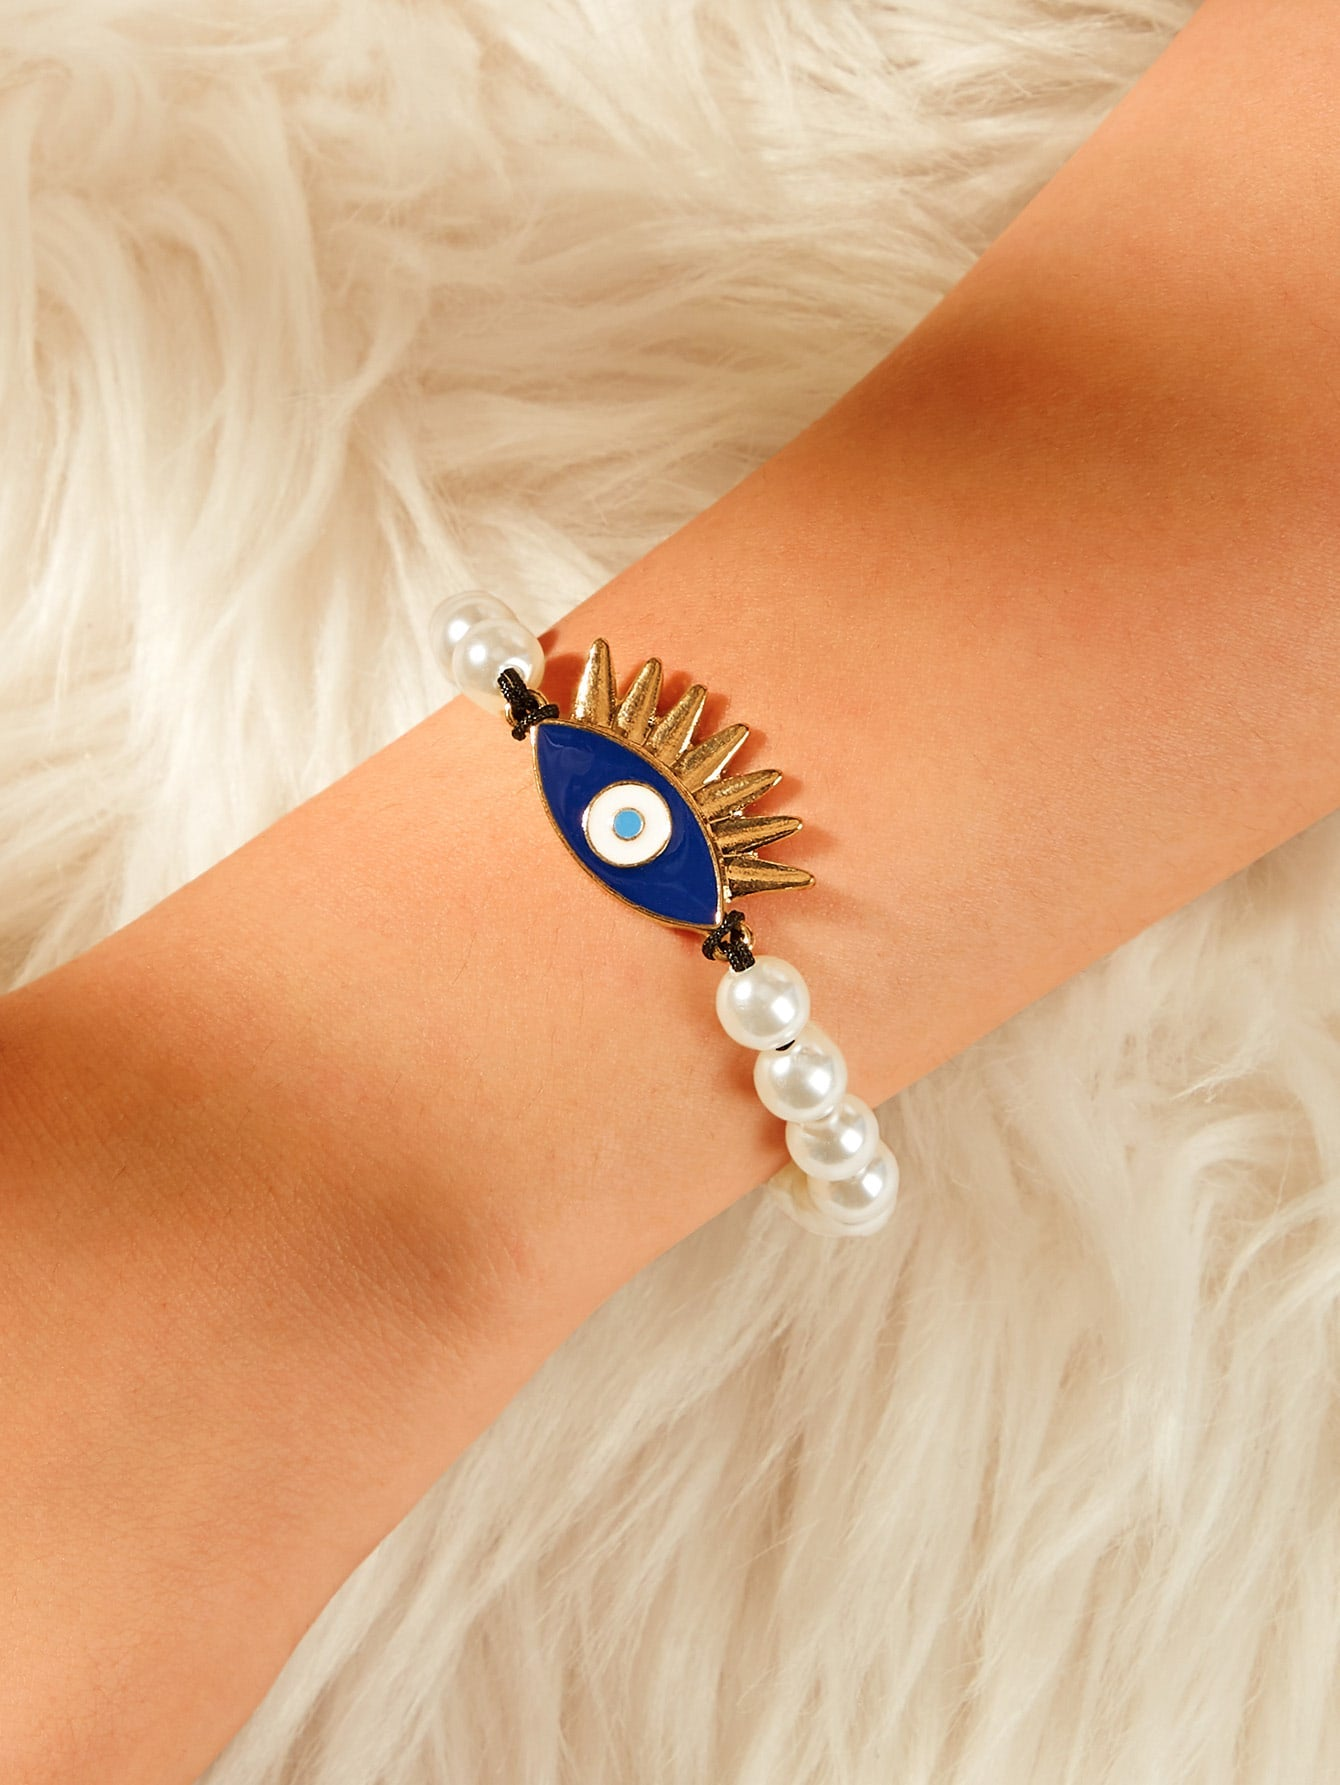 Multicolored Eye Charm With White Beaded 1pc Adjustable Bracelet